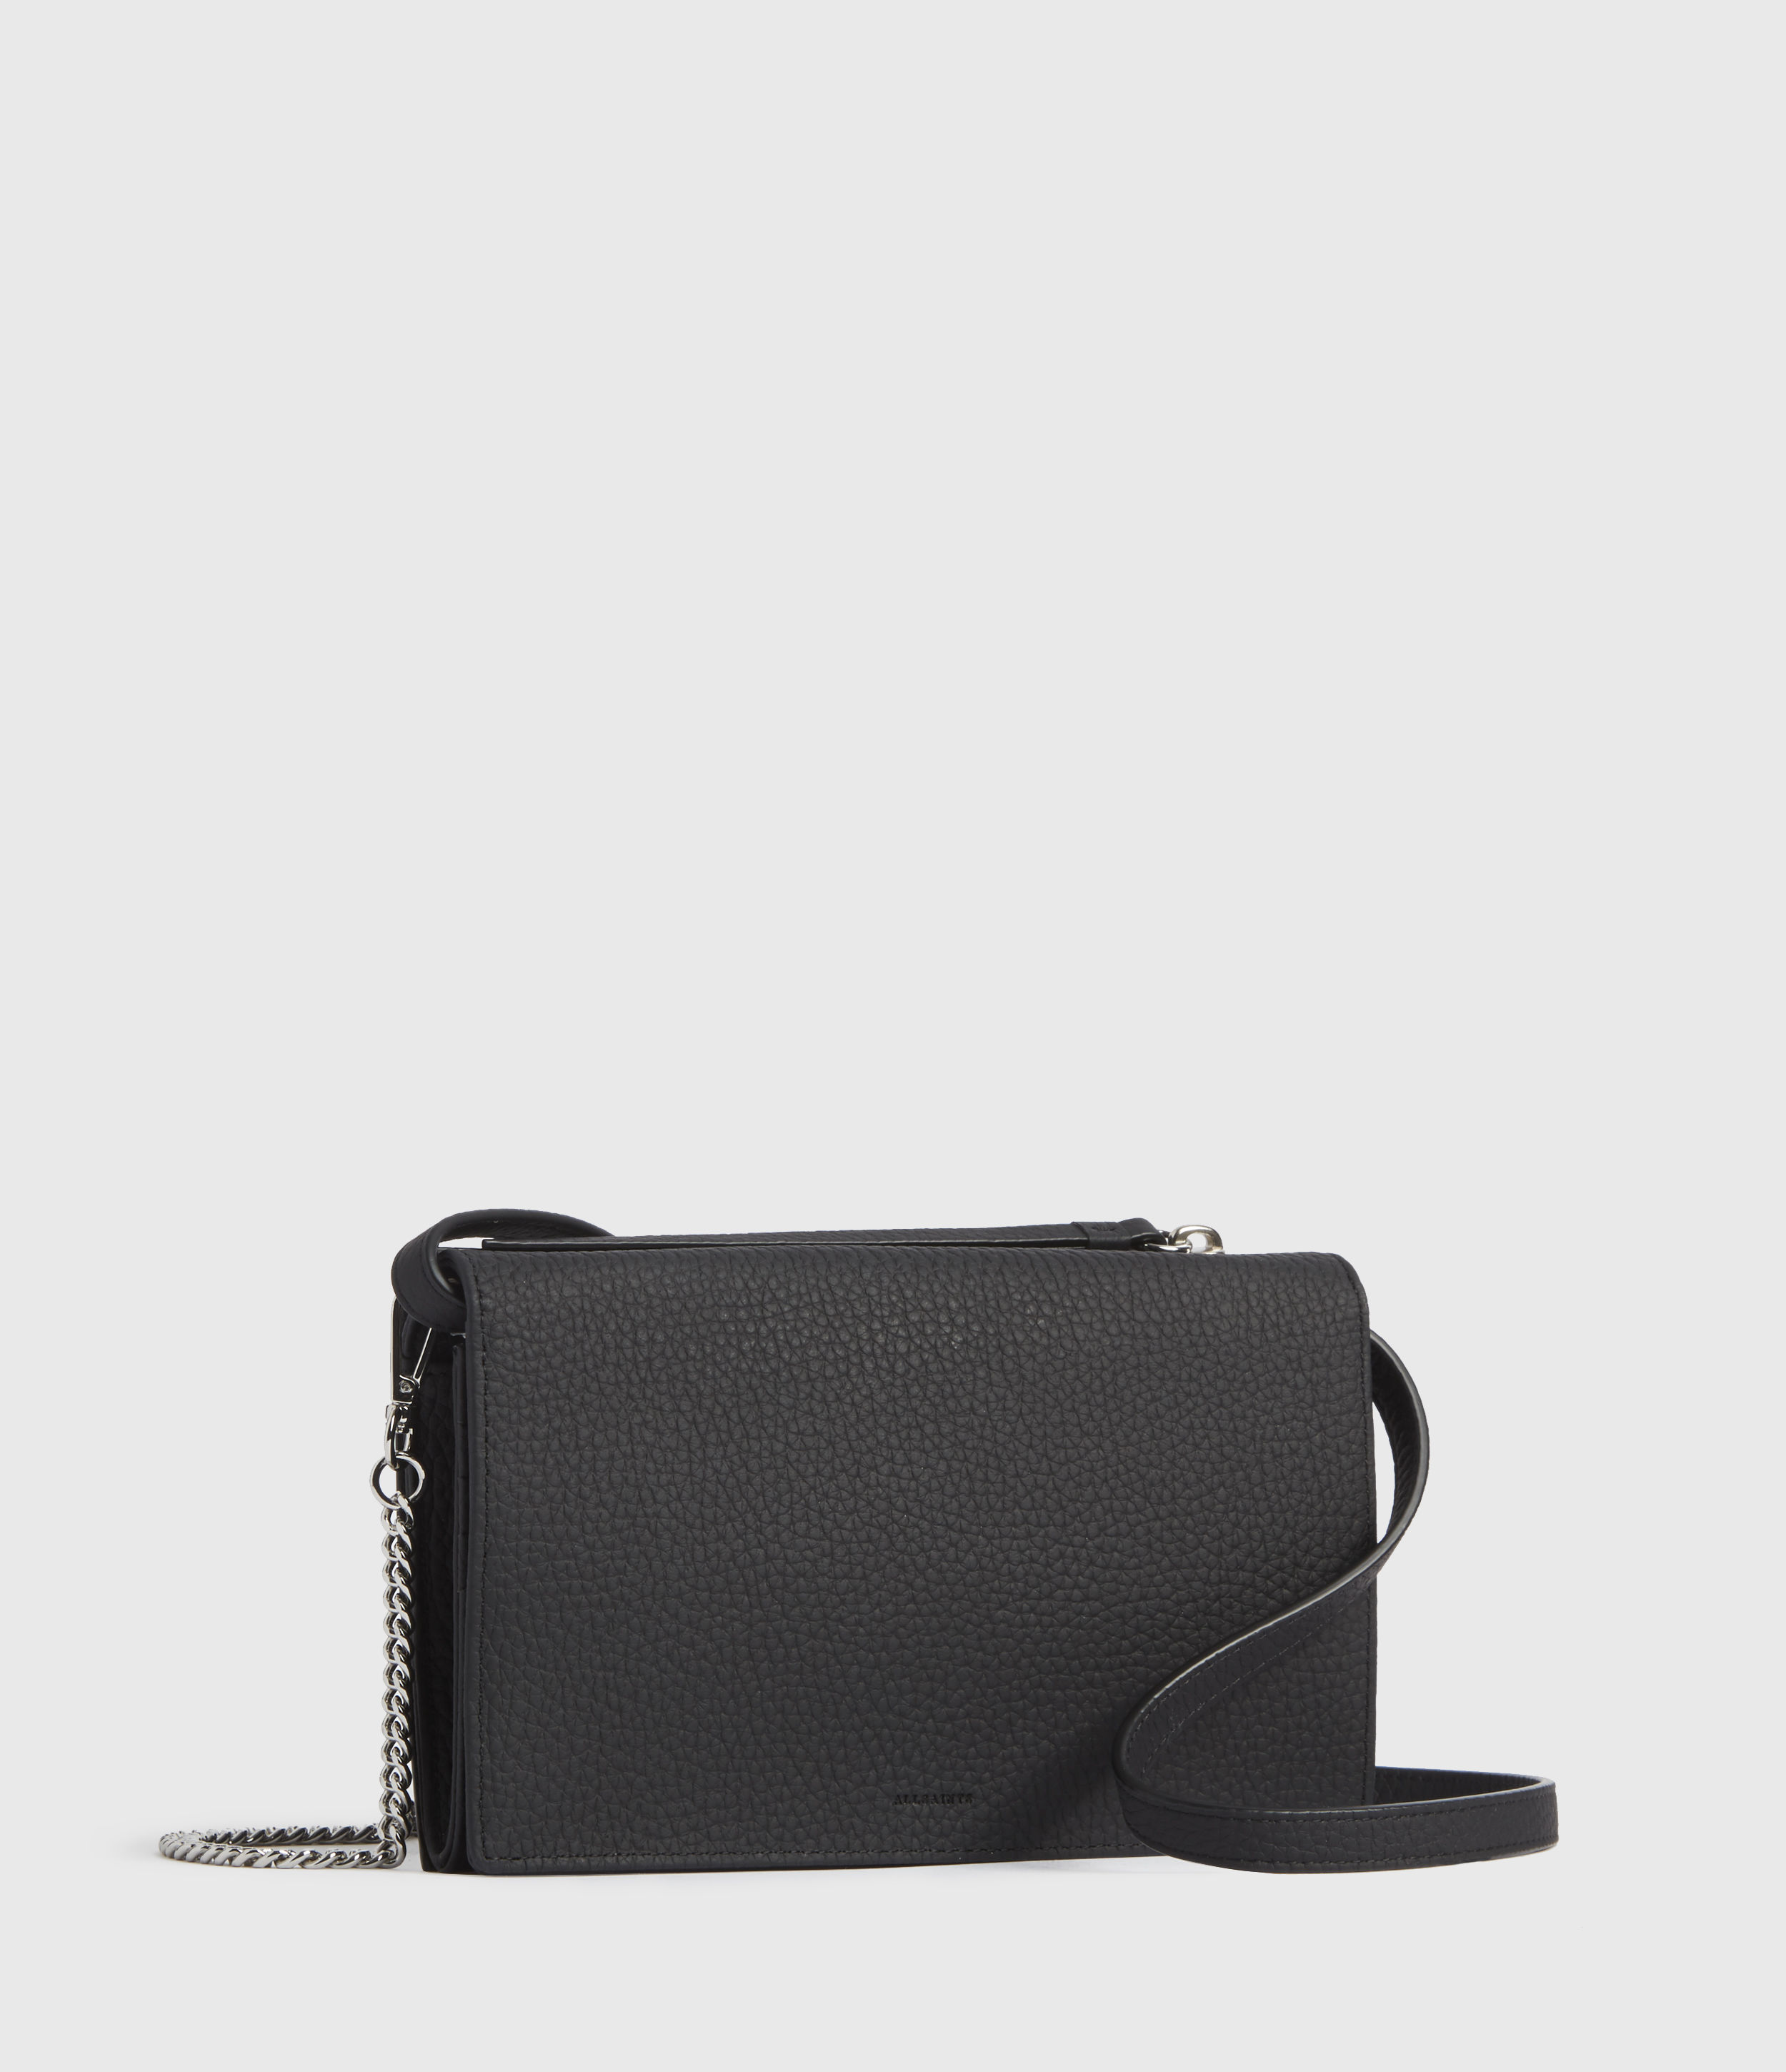 AllSaints Women's Leather Handmade Fetch Chain Crossbody Bag with Removable Straps, Black